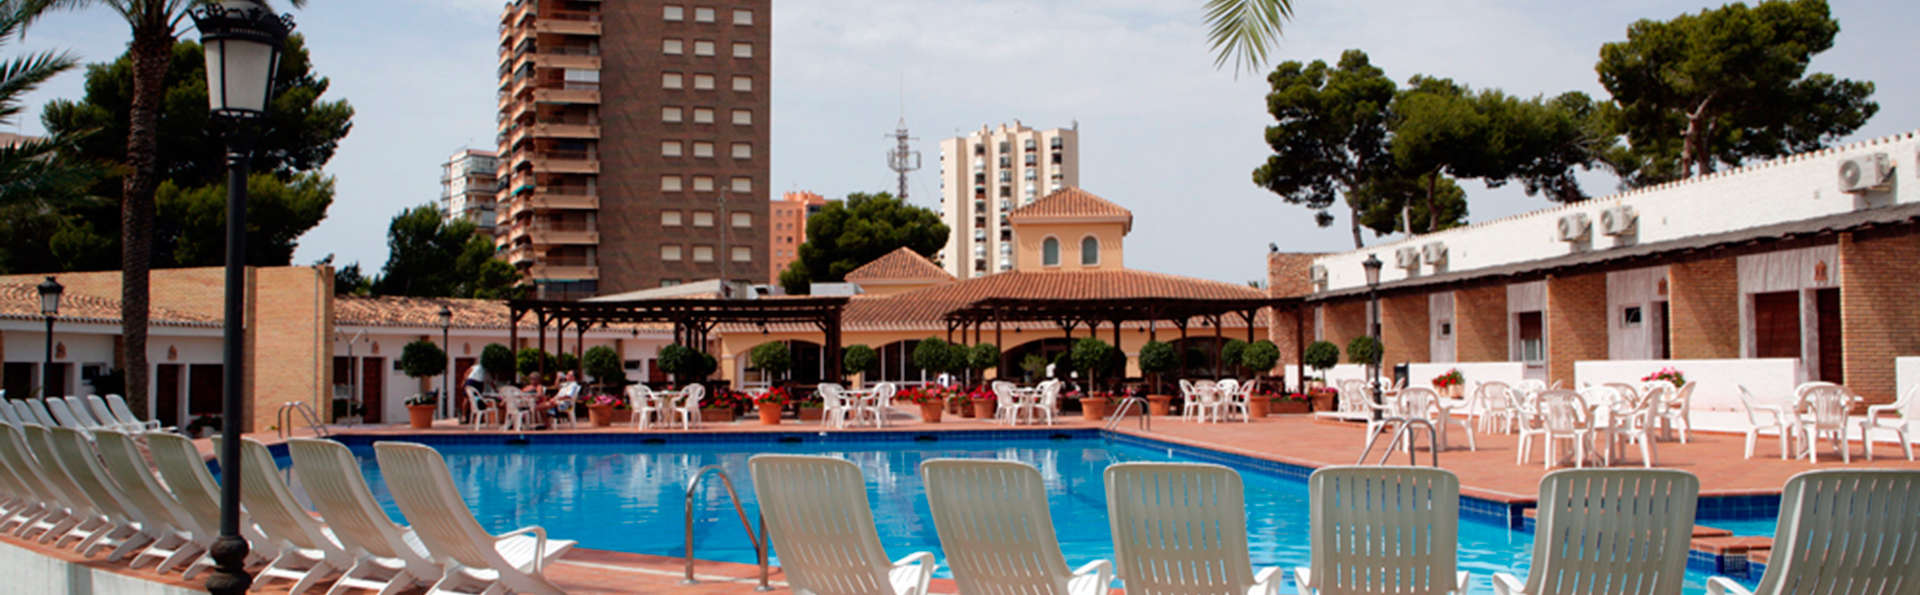 Hotel Montepiedra - EDIT_pool1.jpg